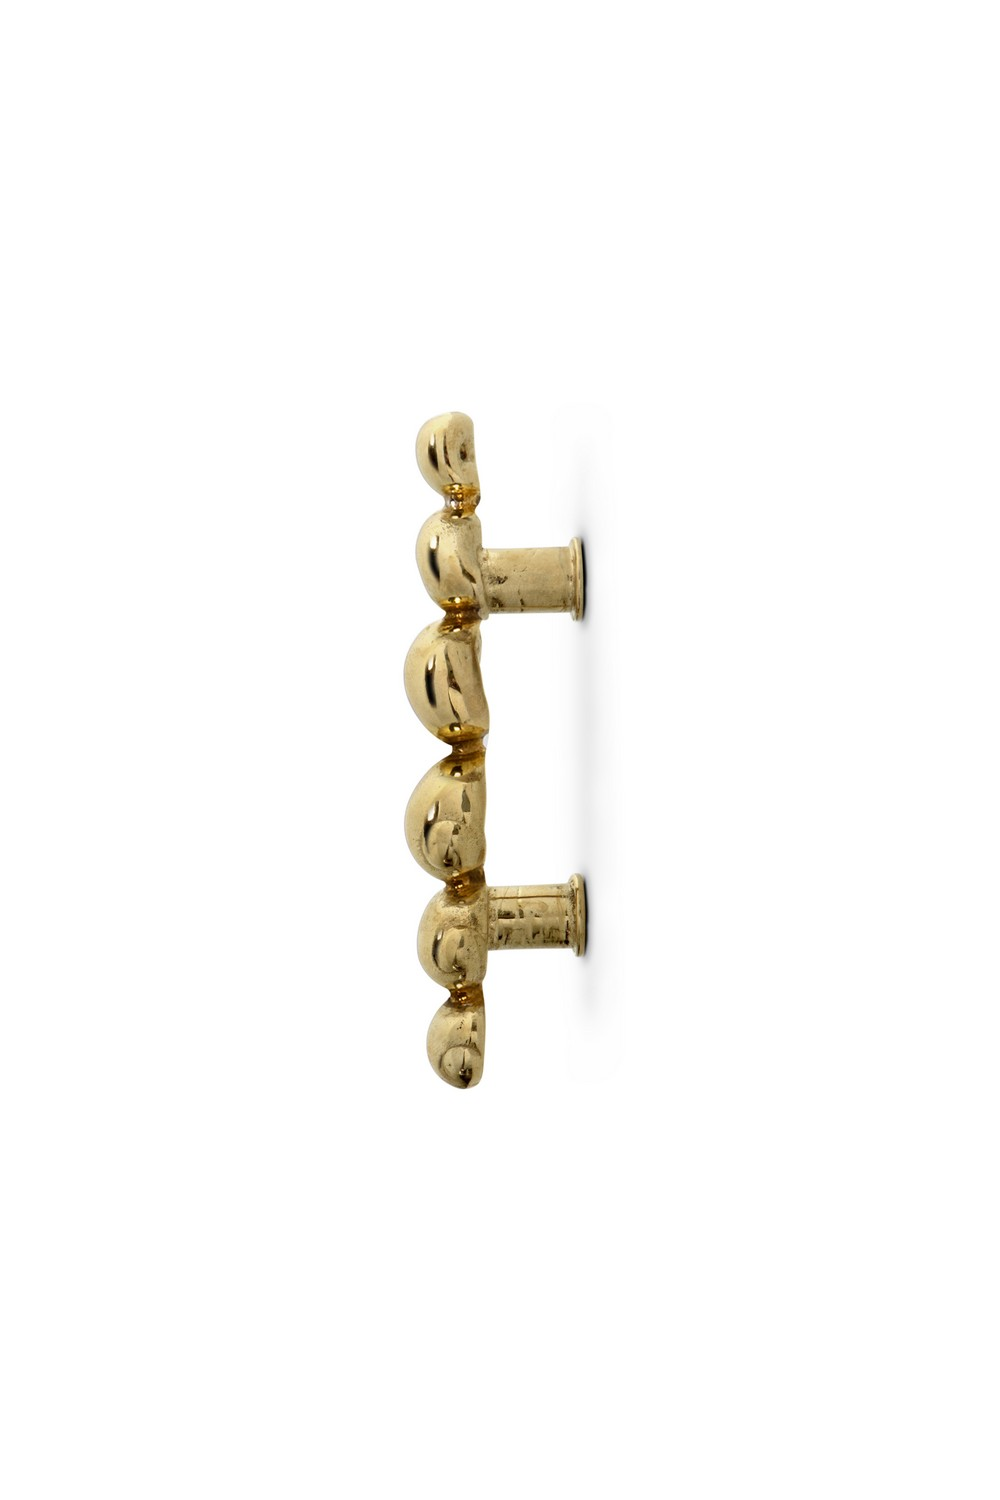 Discover 7 Decorative Hardware Designs that Stand the Test of Time 12 decorative hardware Discover 7 Decorative Hardware Designs that Stand the Test of Time Discover 7 Decorative Hardware Designs that Stand the Test of Time 12